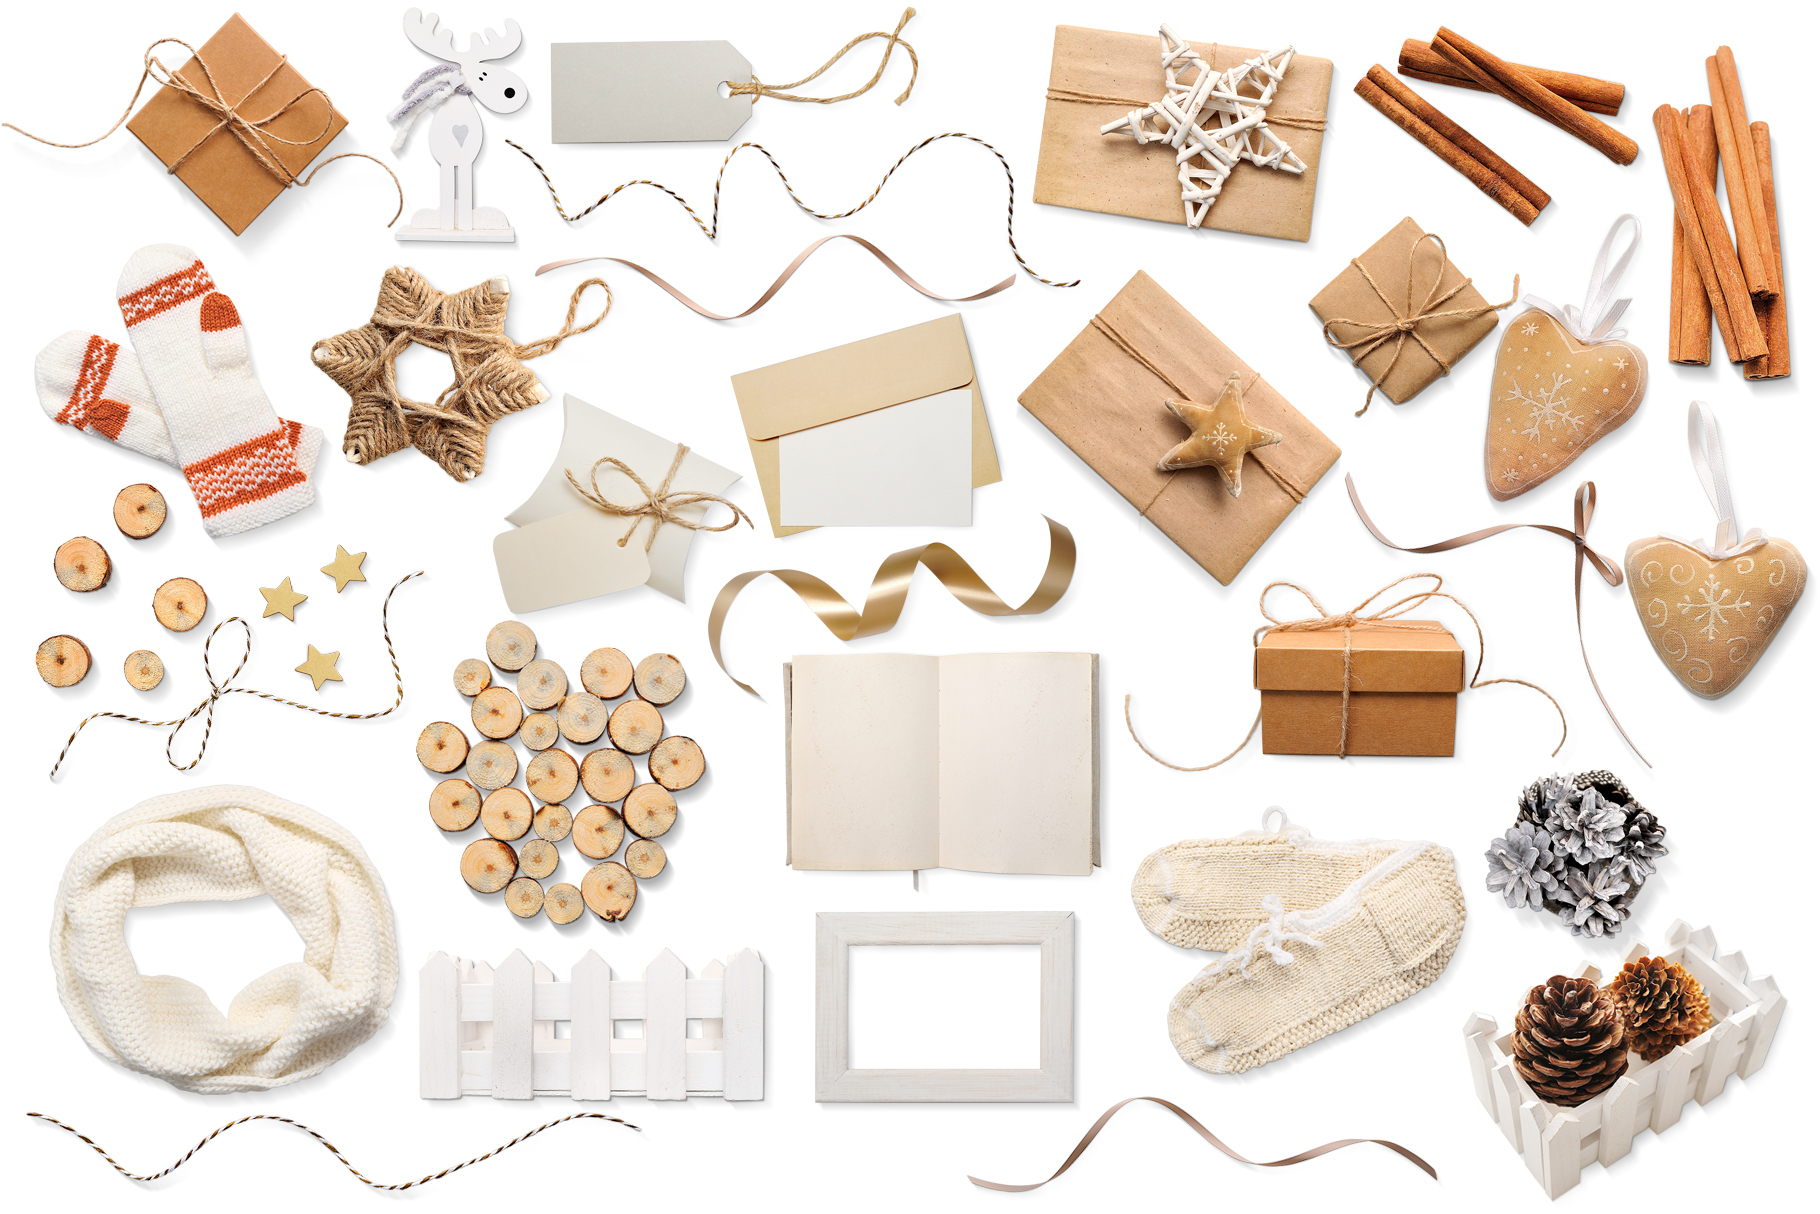 Christmas scene creator, isolated items example image 2